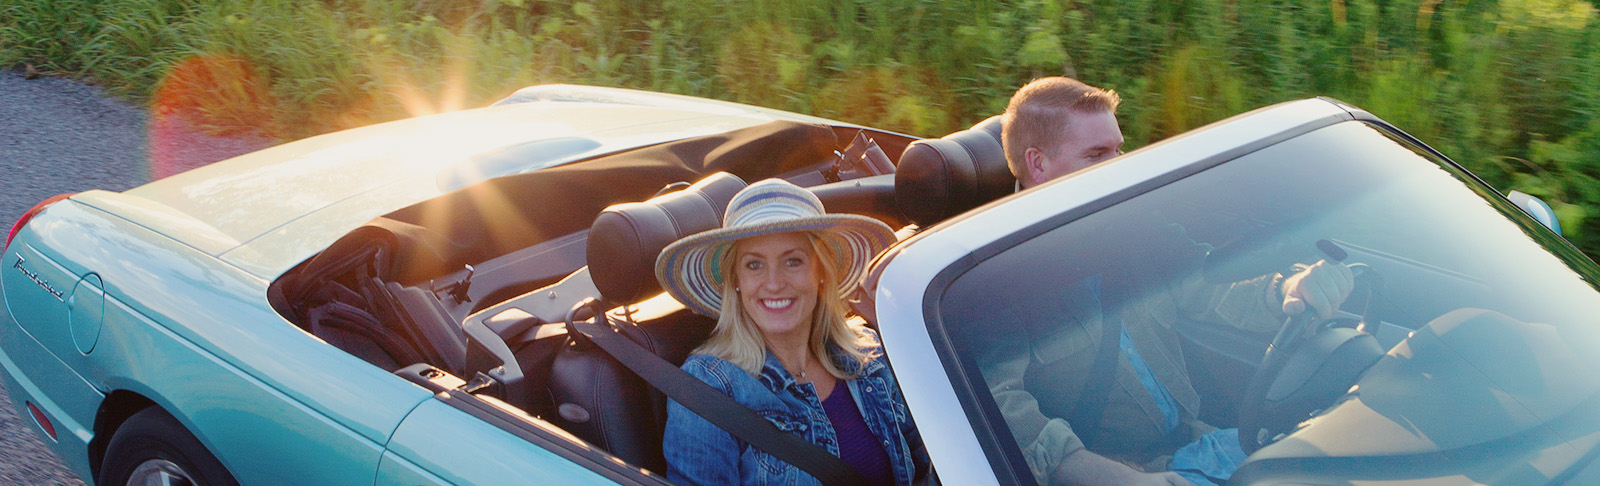 Convertible car with couple in it driving into sunset on country road